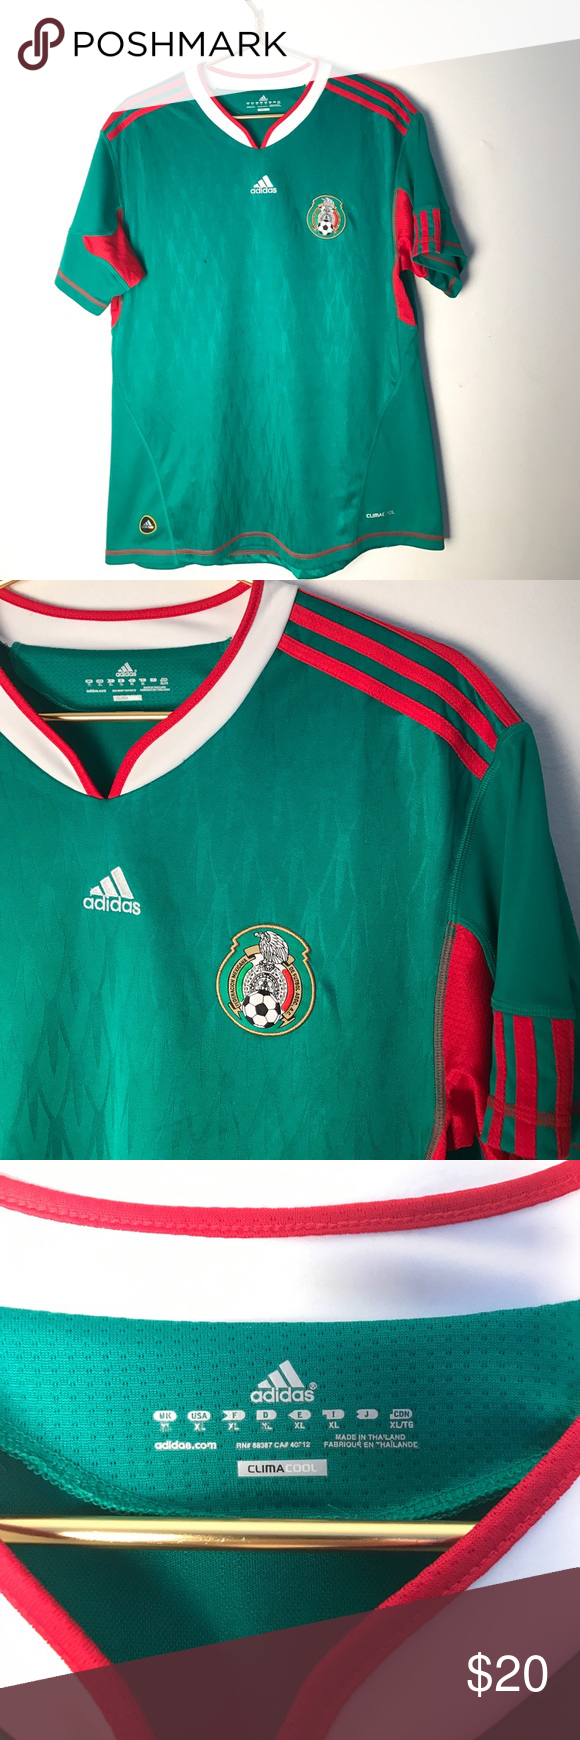 ff7a5e4a9 Mens adidas Mexico national soccer jersey Size XL with minor stain  pictured. Men s national Mexico soccer team jersey by adidas adidas Shirts  Tees - Short ...